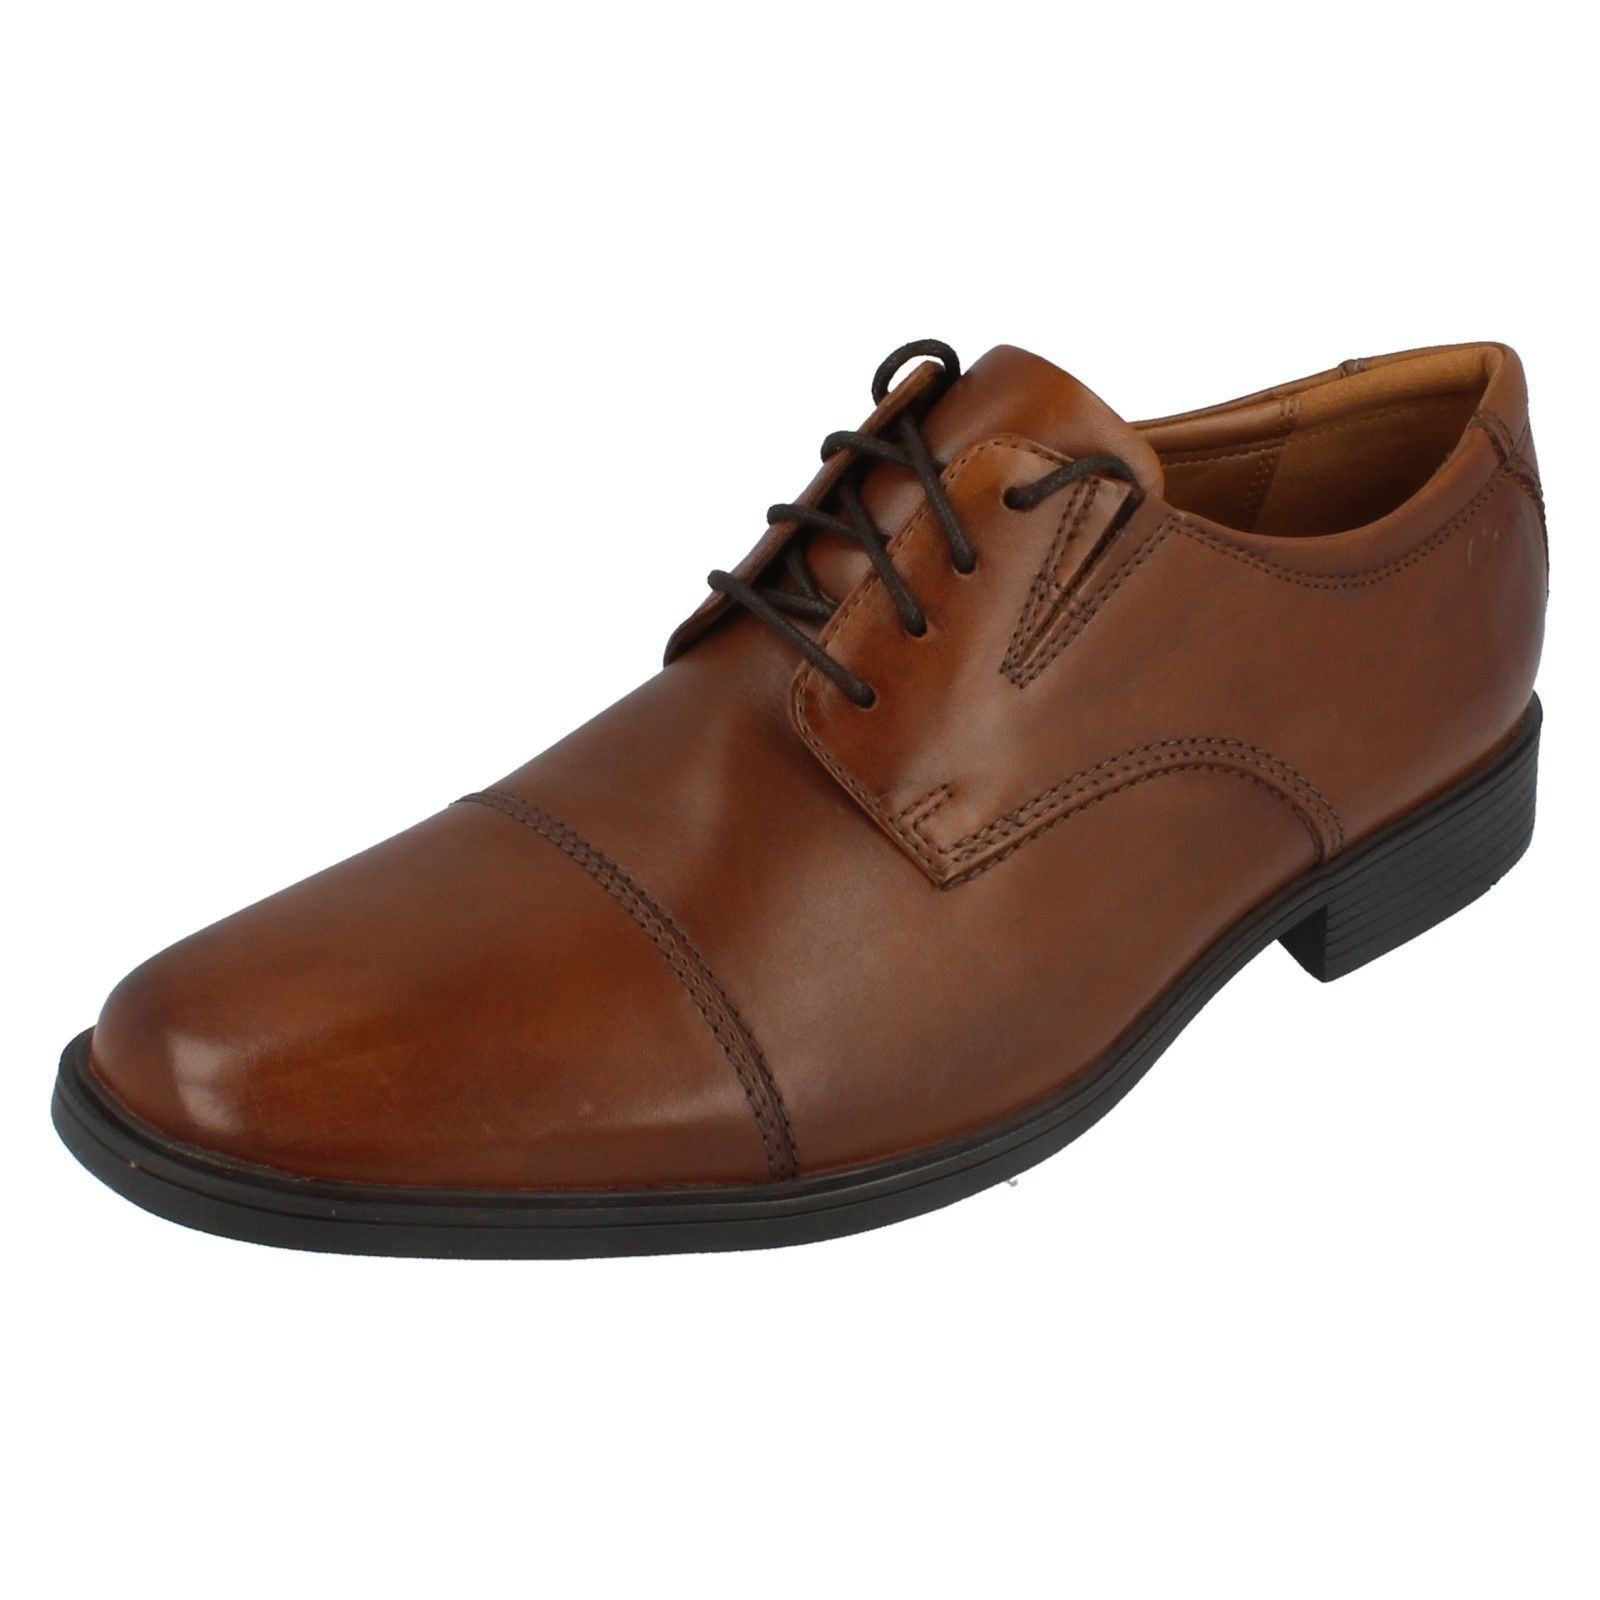 Mens TILDEN CAP Dark Tan leather lace up shoes by clarks retail